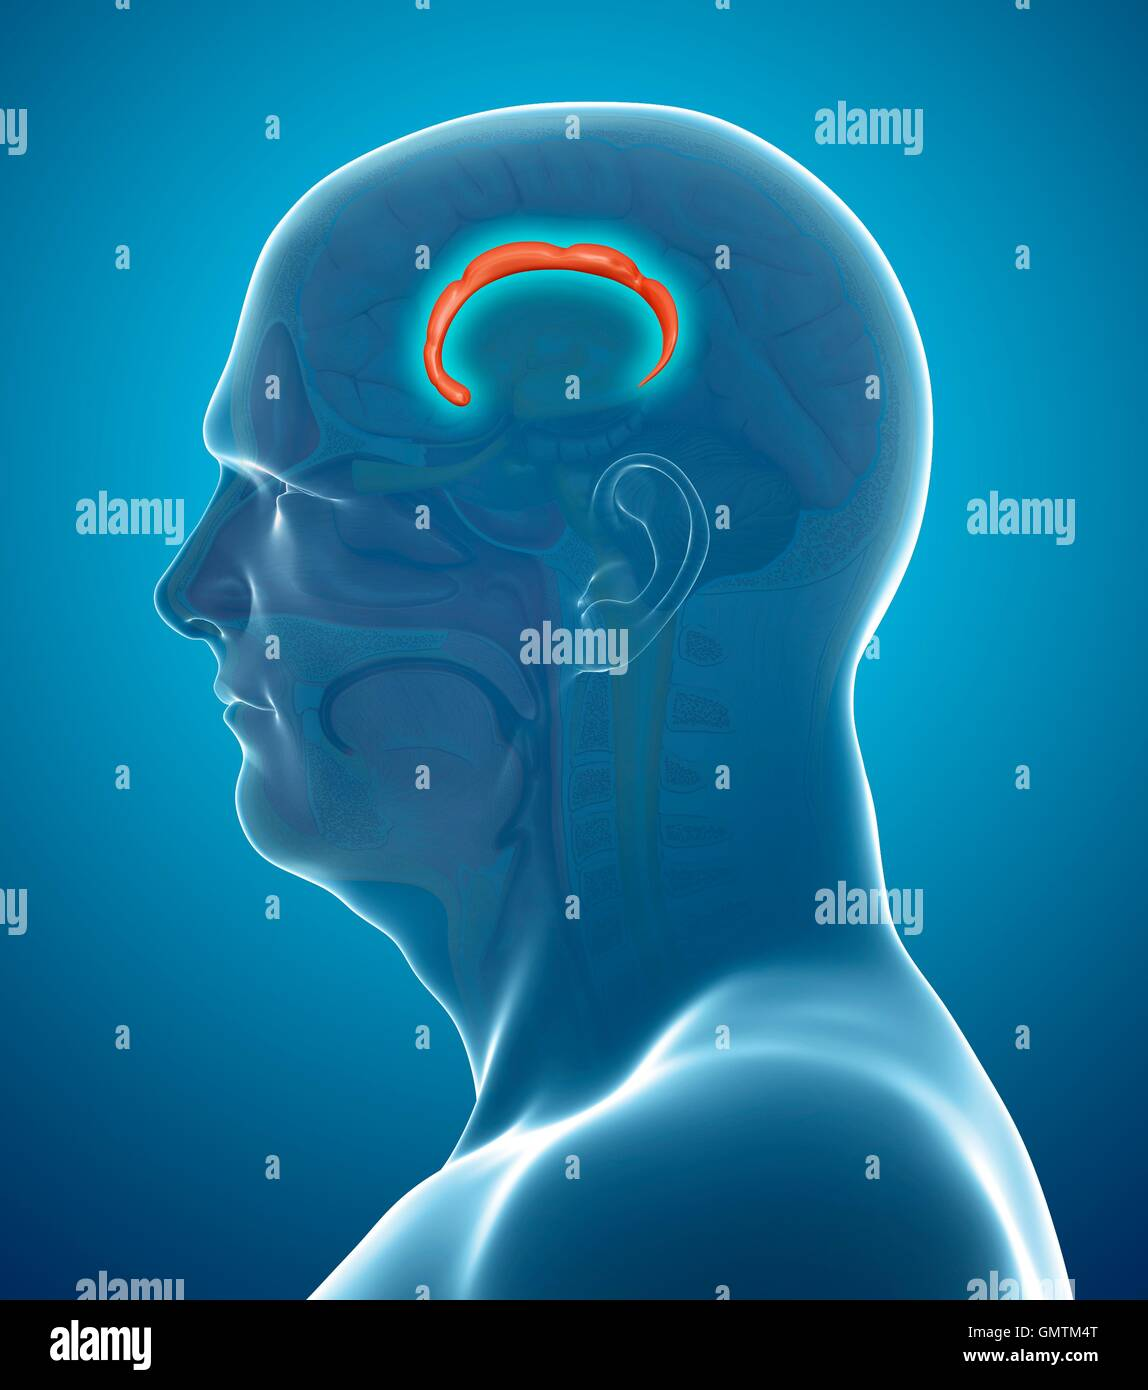 Illustration du gyrus cingulaire l dans le cerveau. Photo Stock